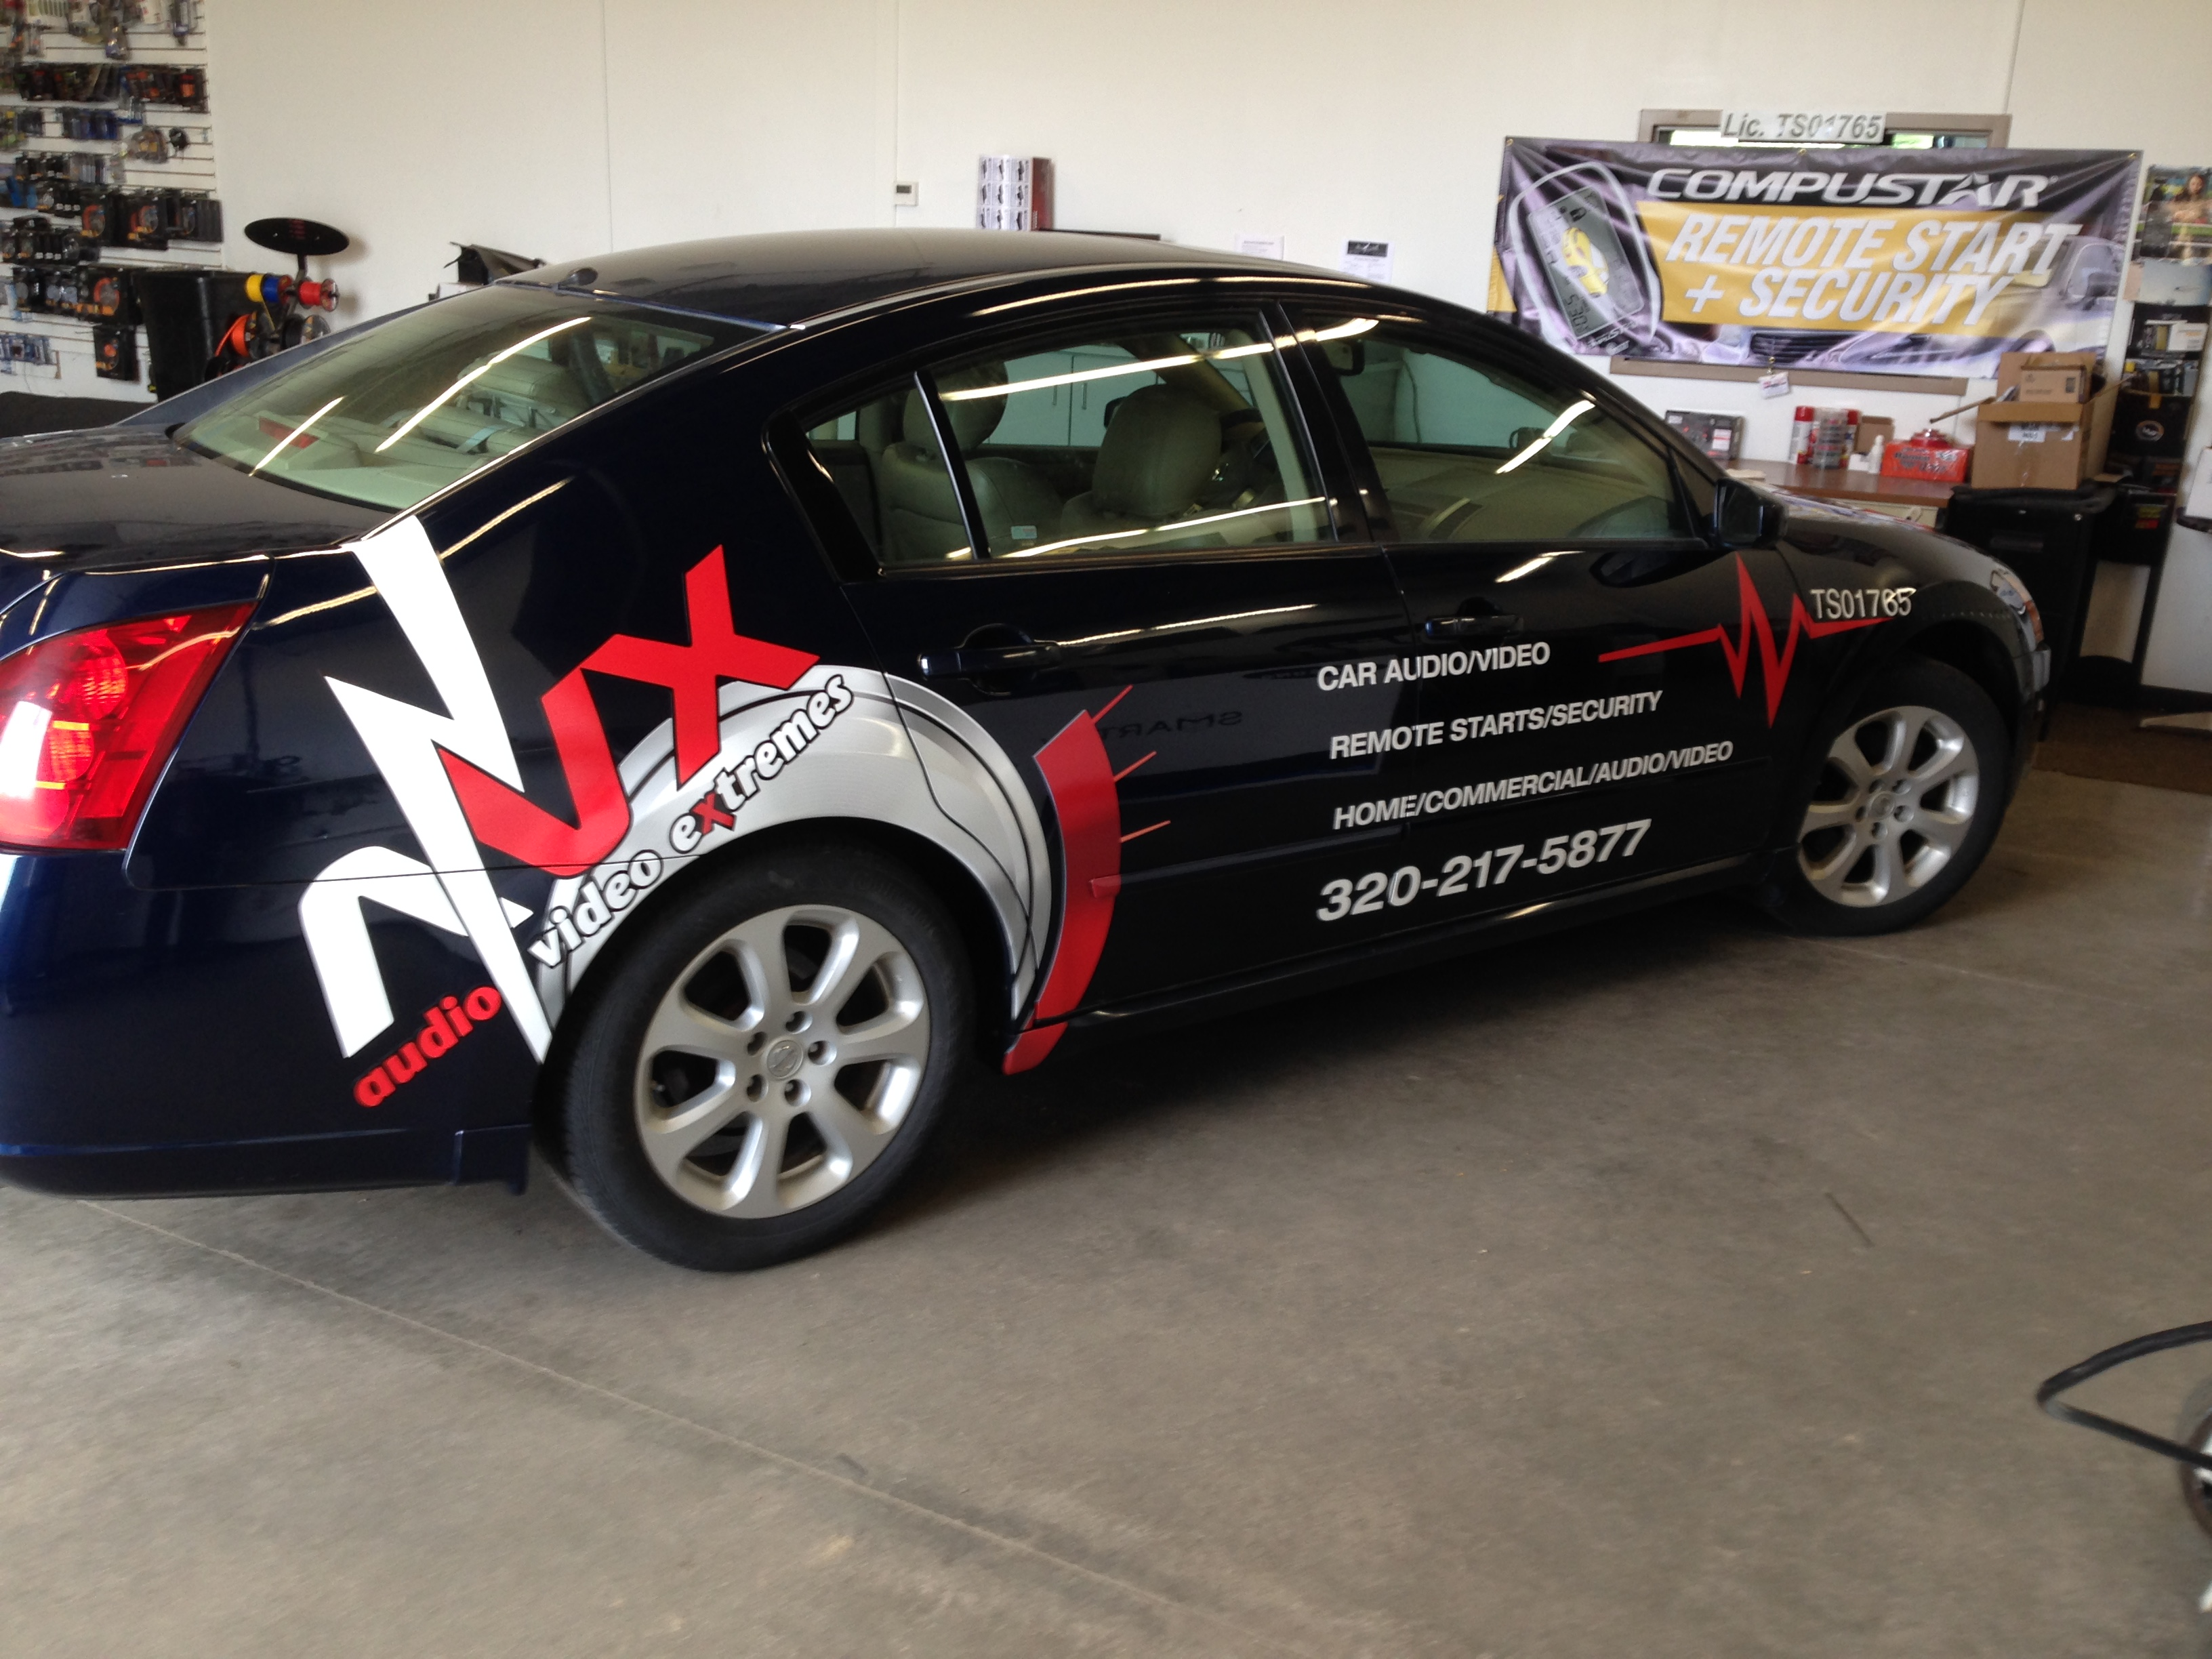 Audio Video Extreme's Car Wrap | Signmax.com